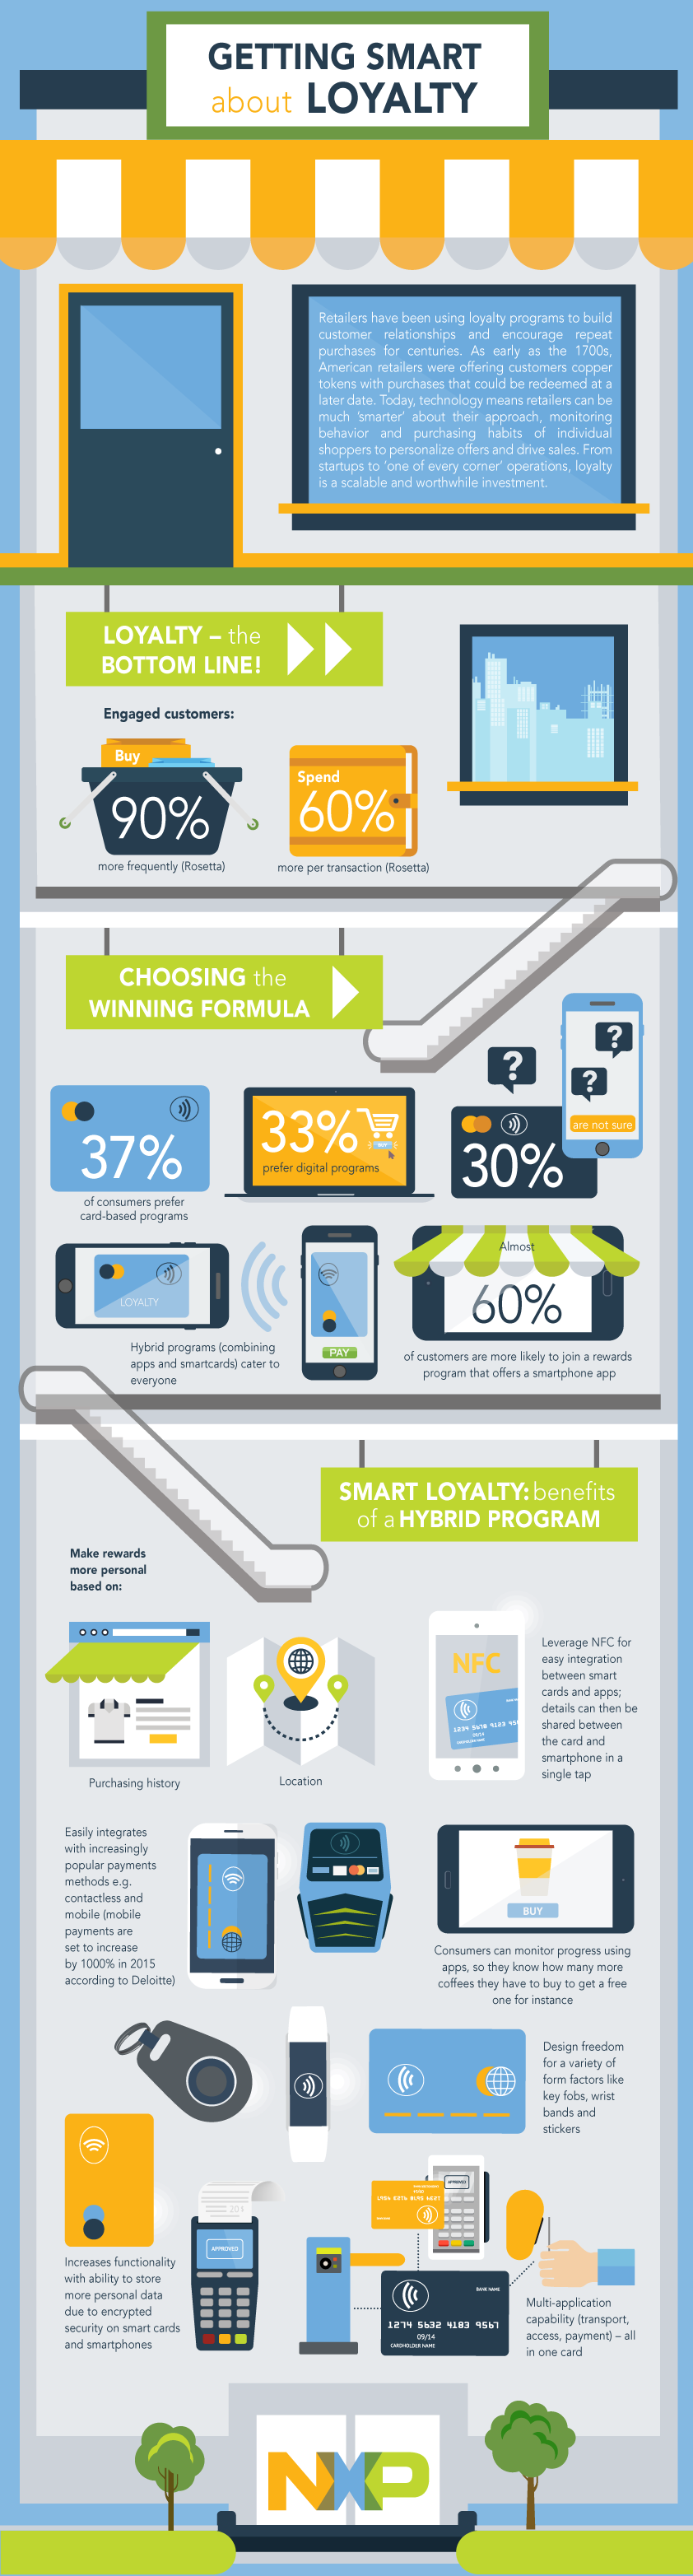 NXP_Smart Loyalty_infographic